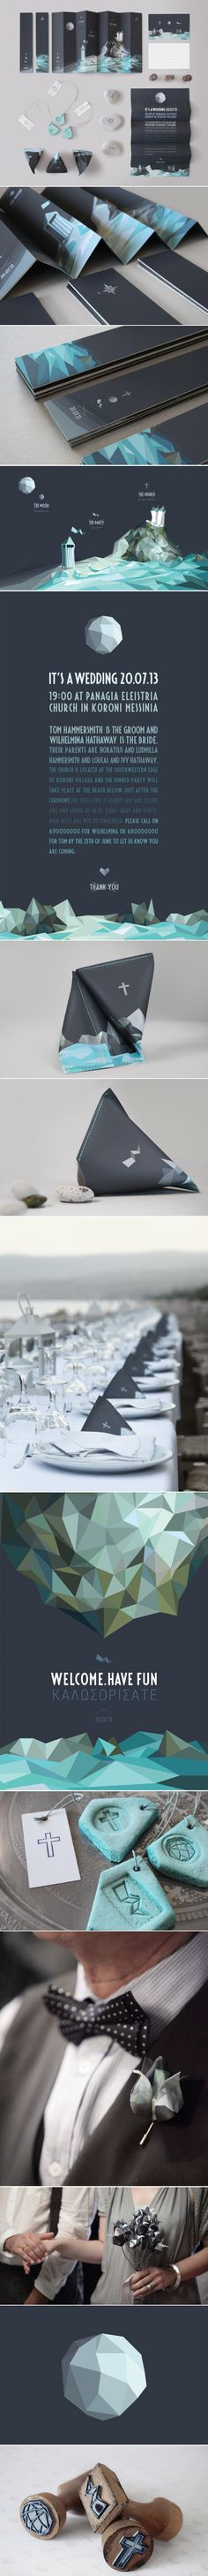 THE KORONI WEDDING. This is beautiful as well as clever #wedding #invitation #packaging